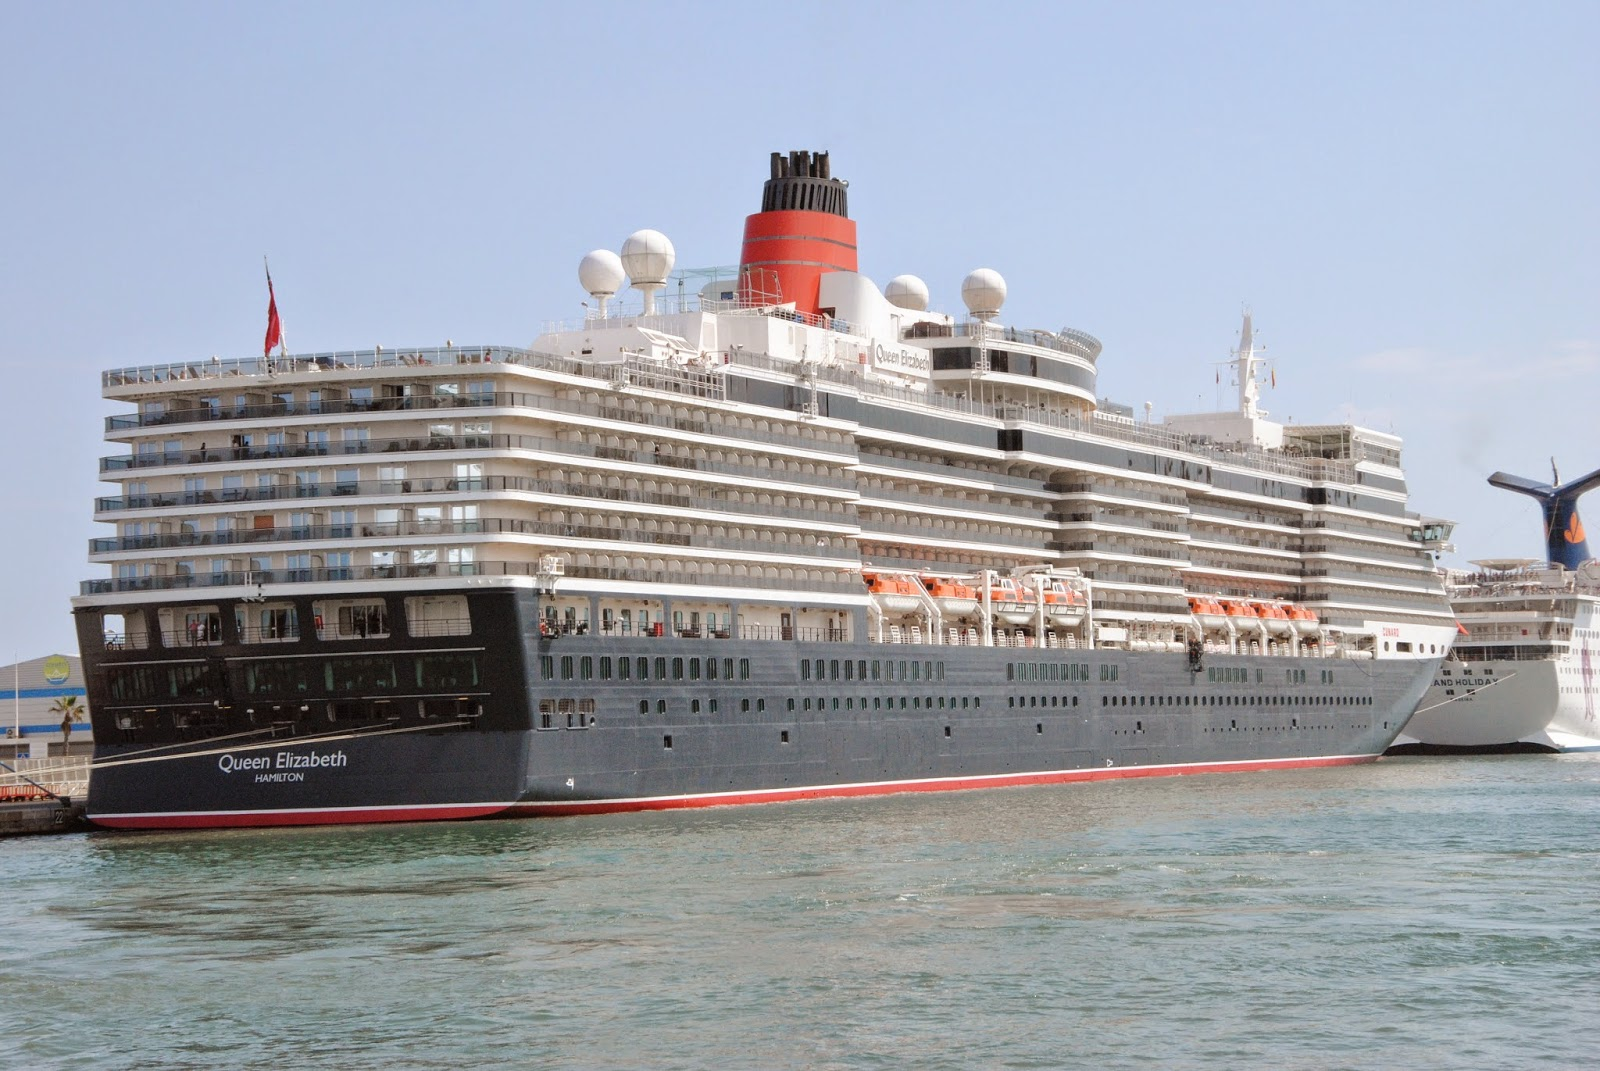 NAVIGATIONCruising And Maritime Themes QuotQUEEN ELIZABETH